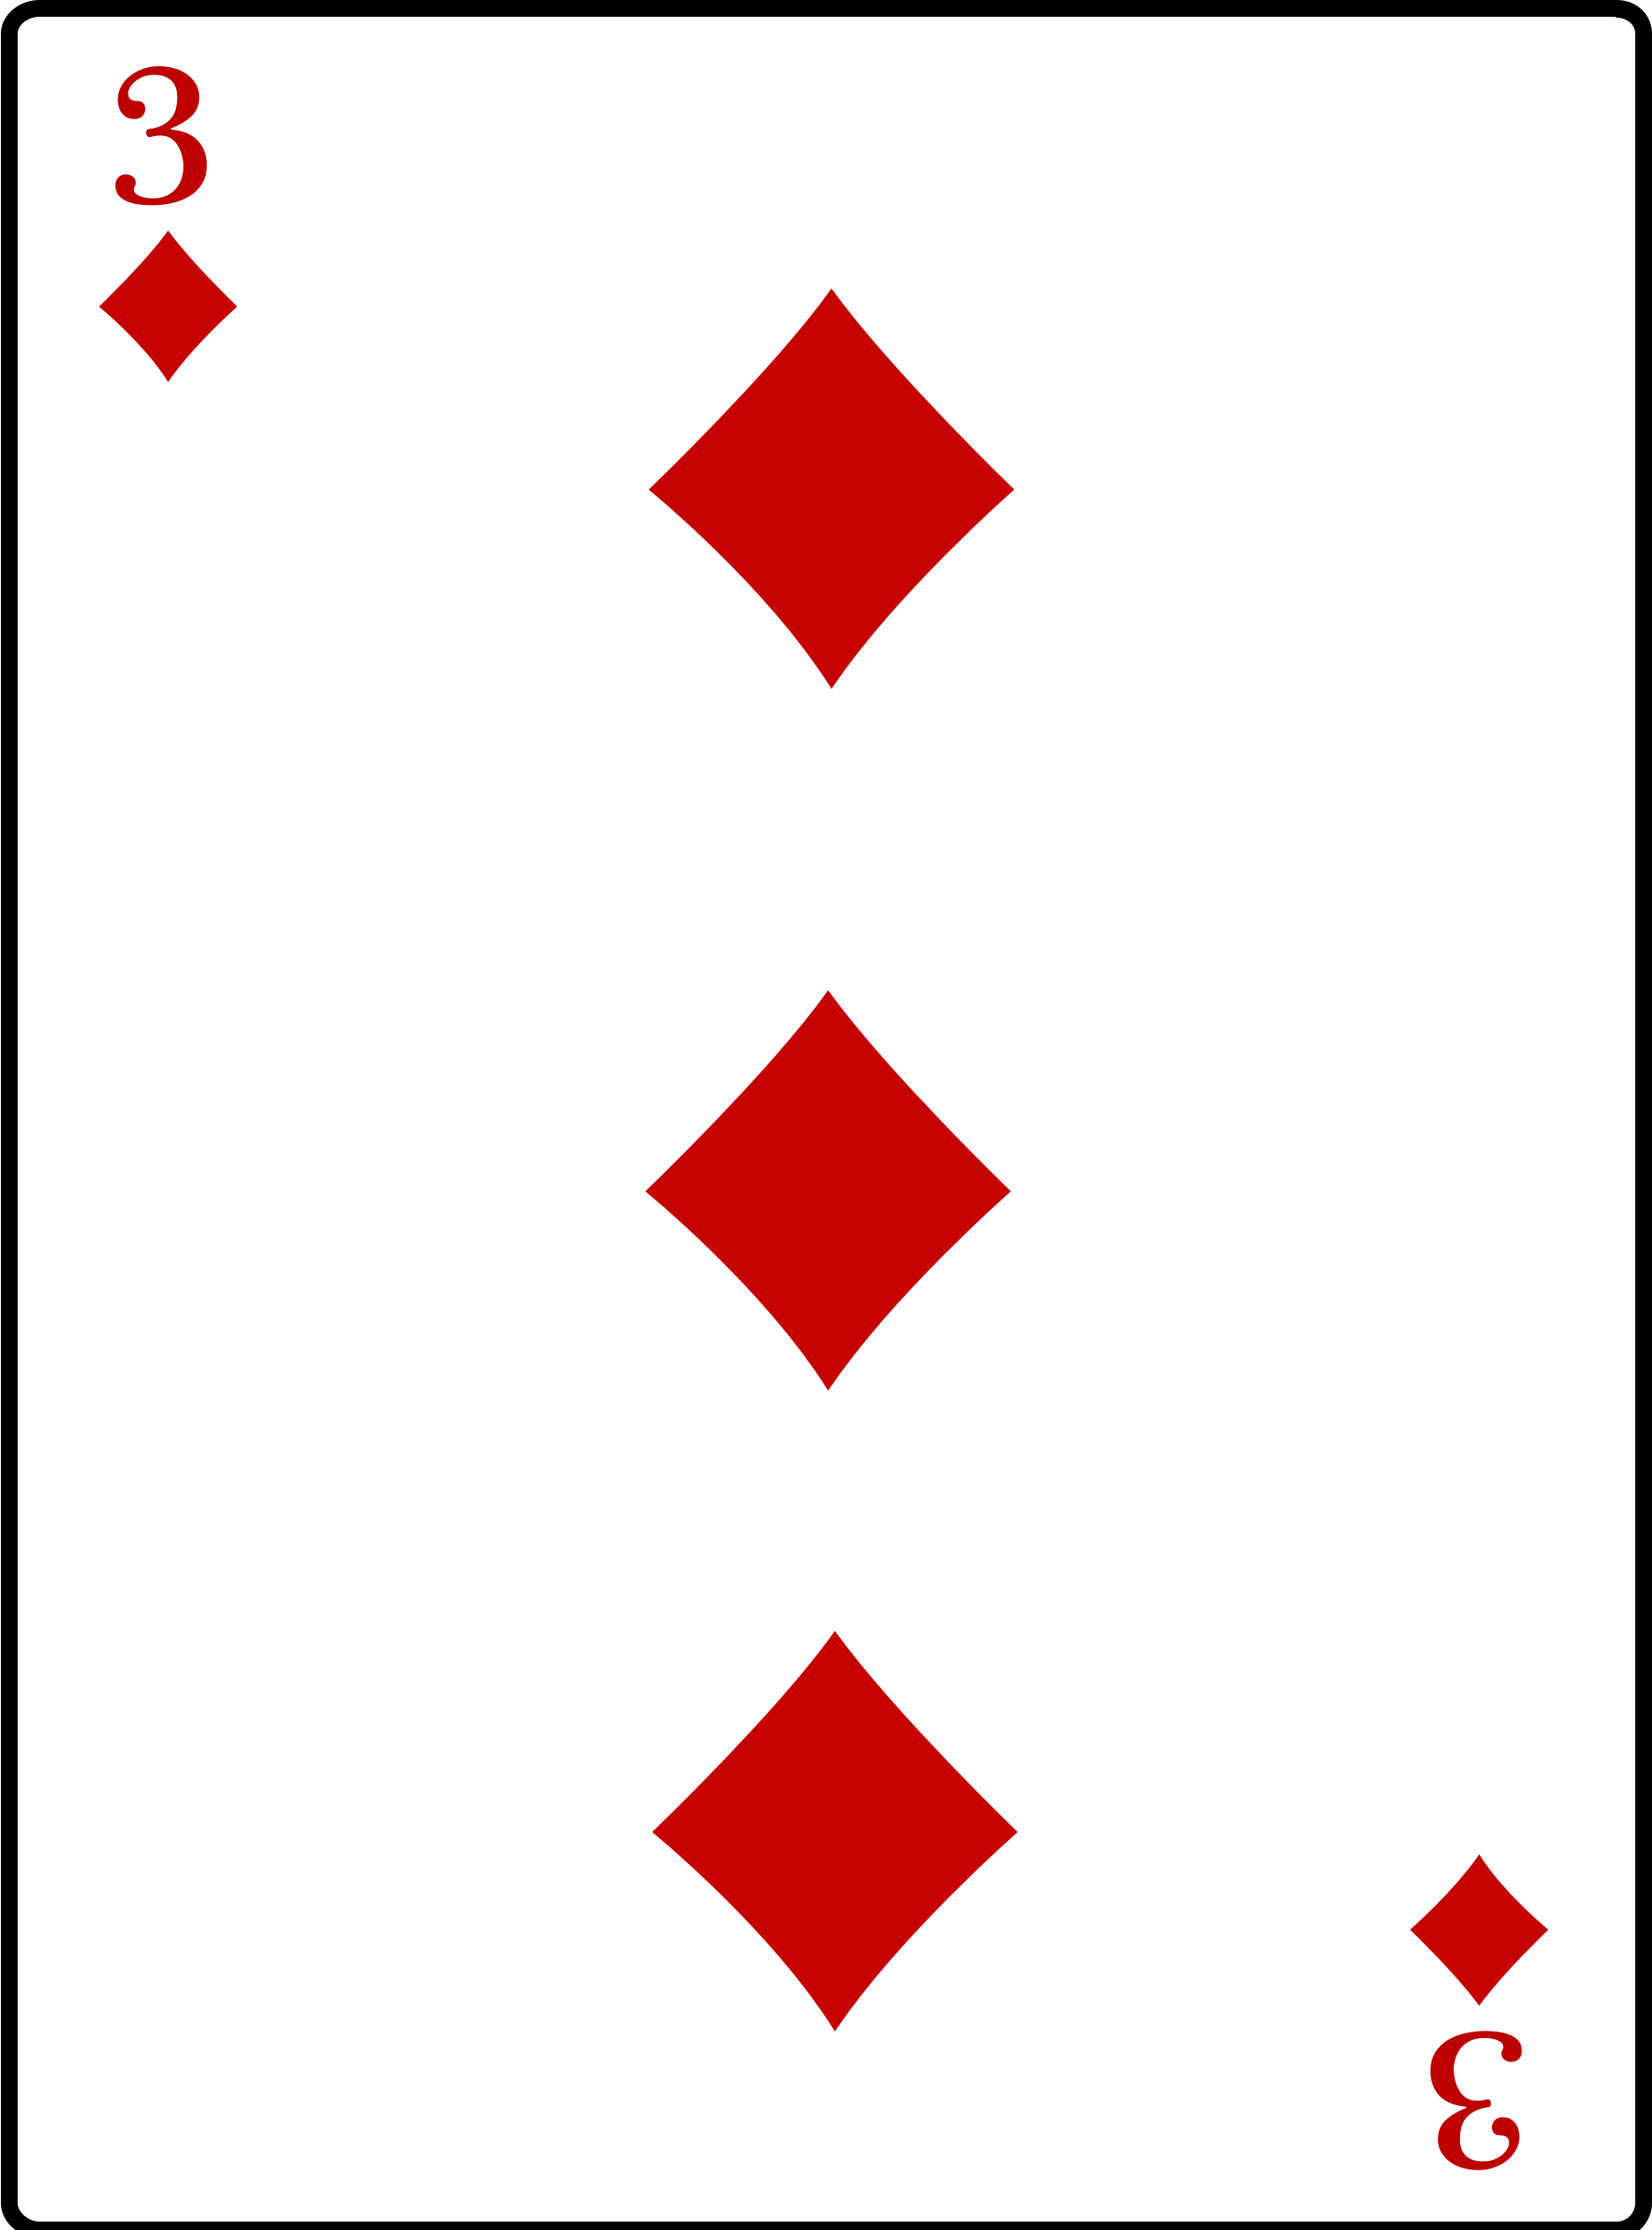 Clipart - 3 of Diamonds